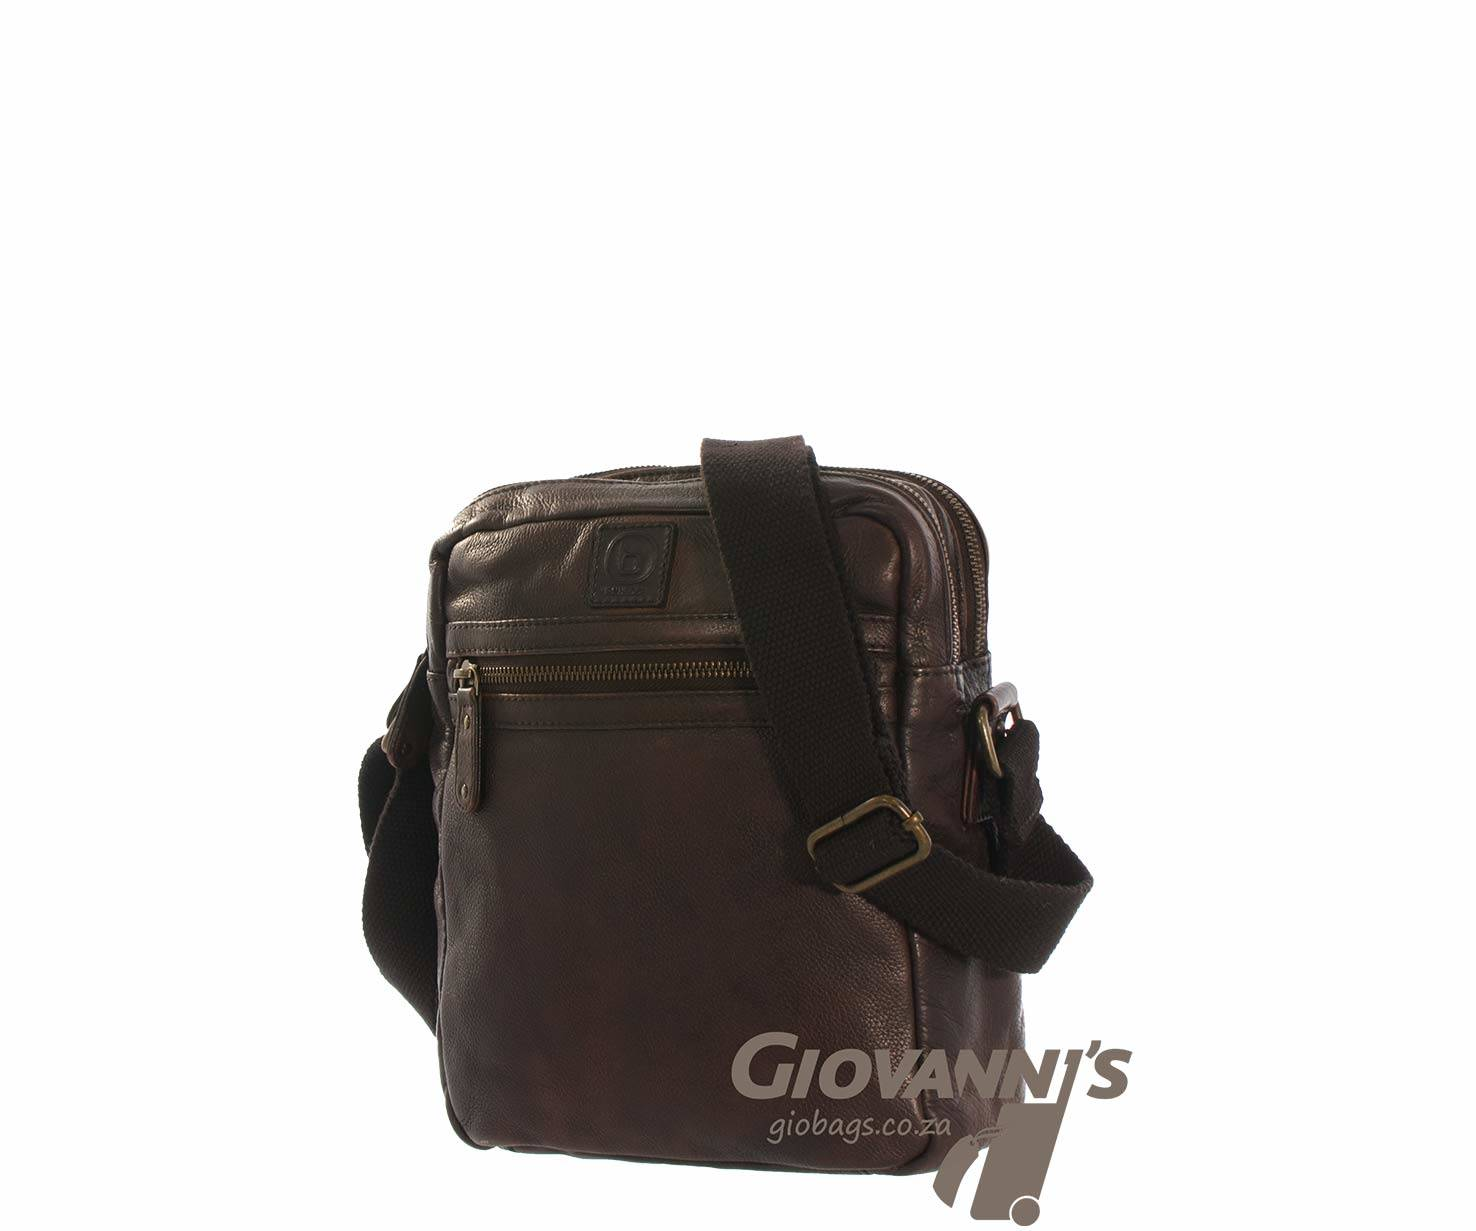 Giobags Brando Leather Daytona Sling Bag